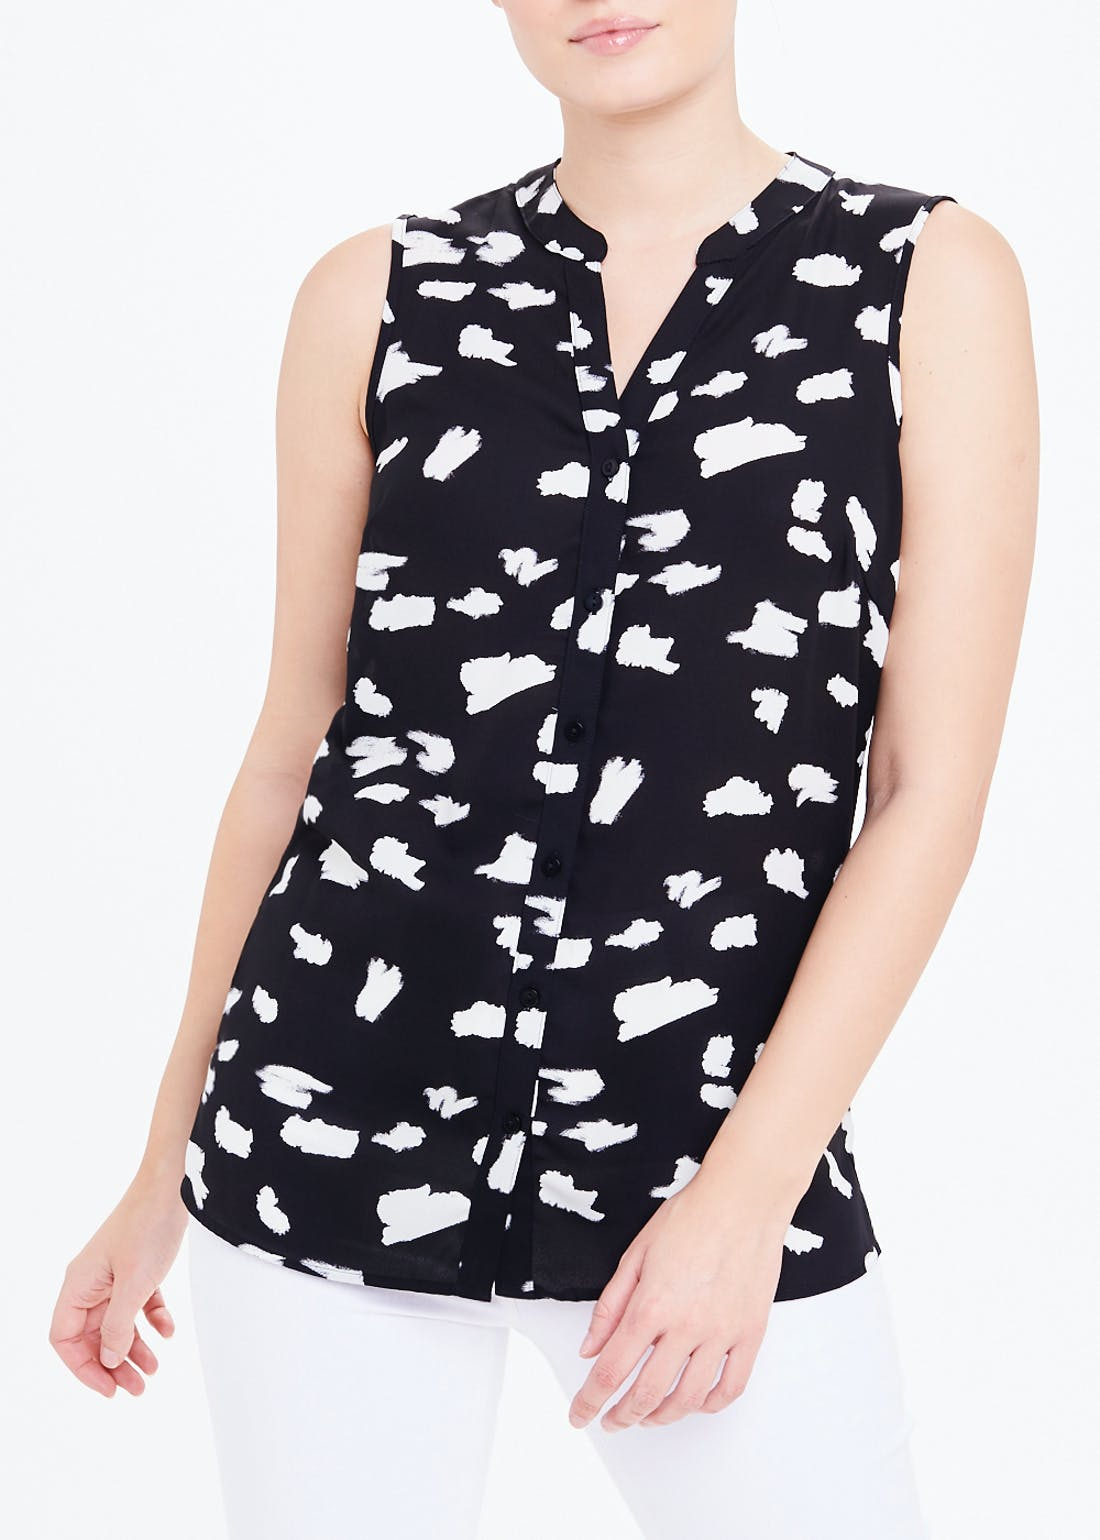 Black Sleeveless Smudge Print Blouse